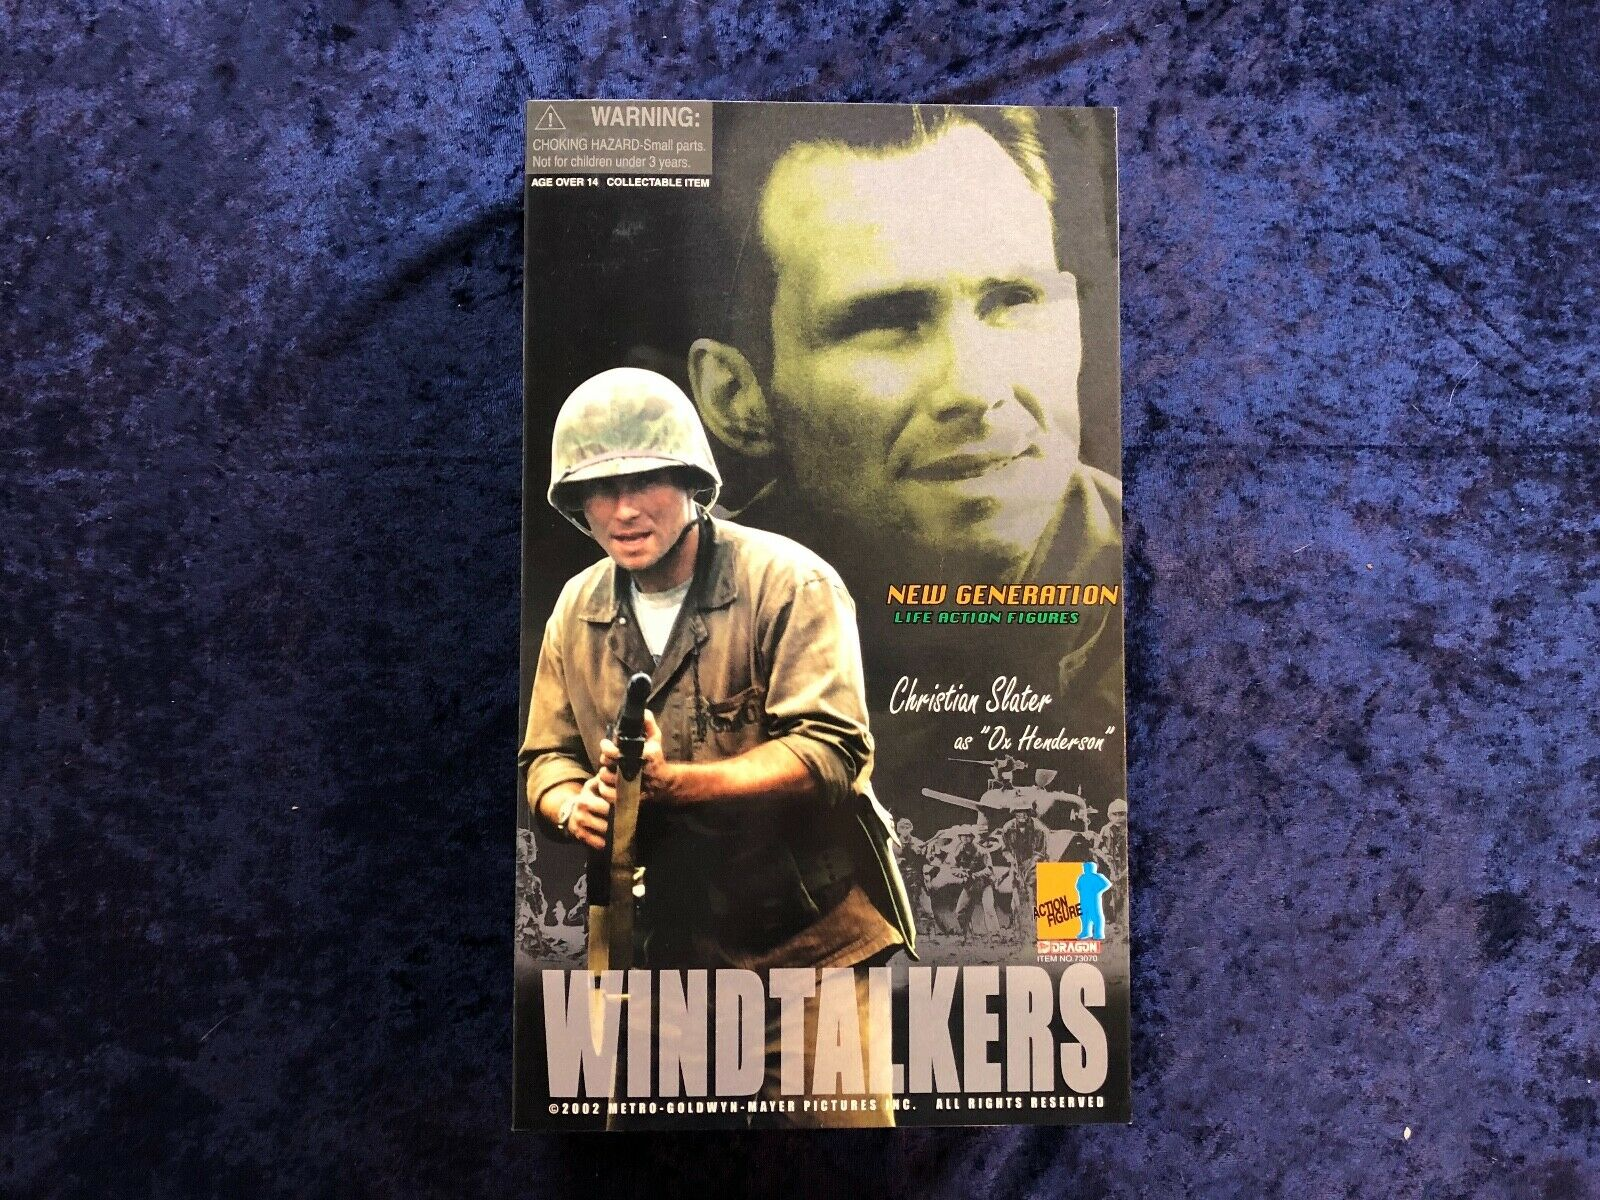 Dragon WWII 16 Windtakers Movie Christian Slater as Ox Henderson